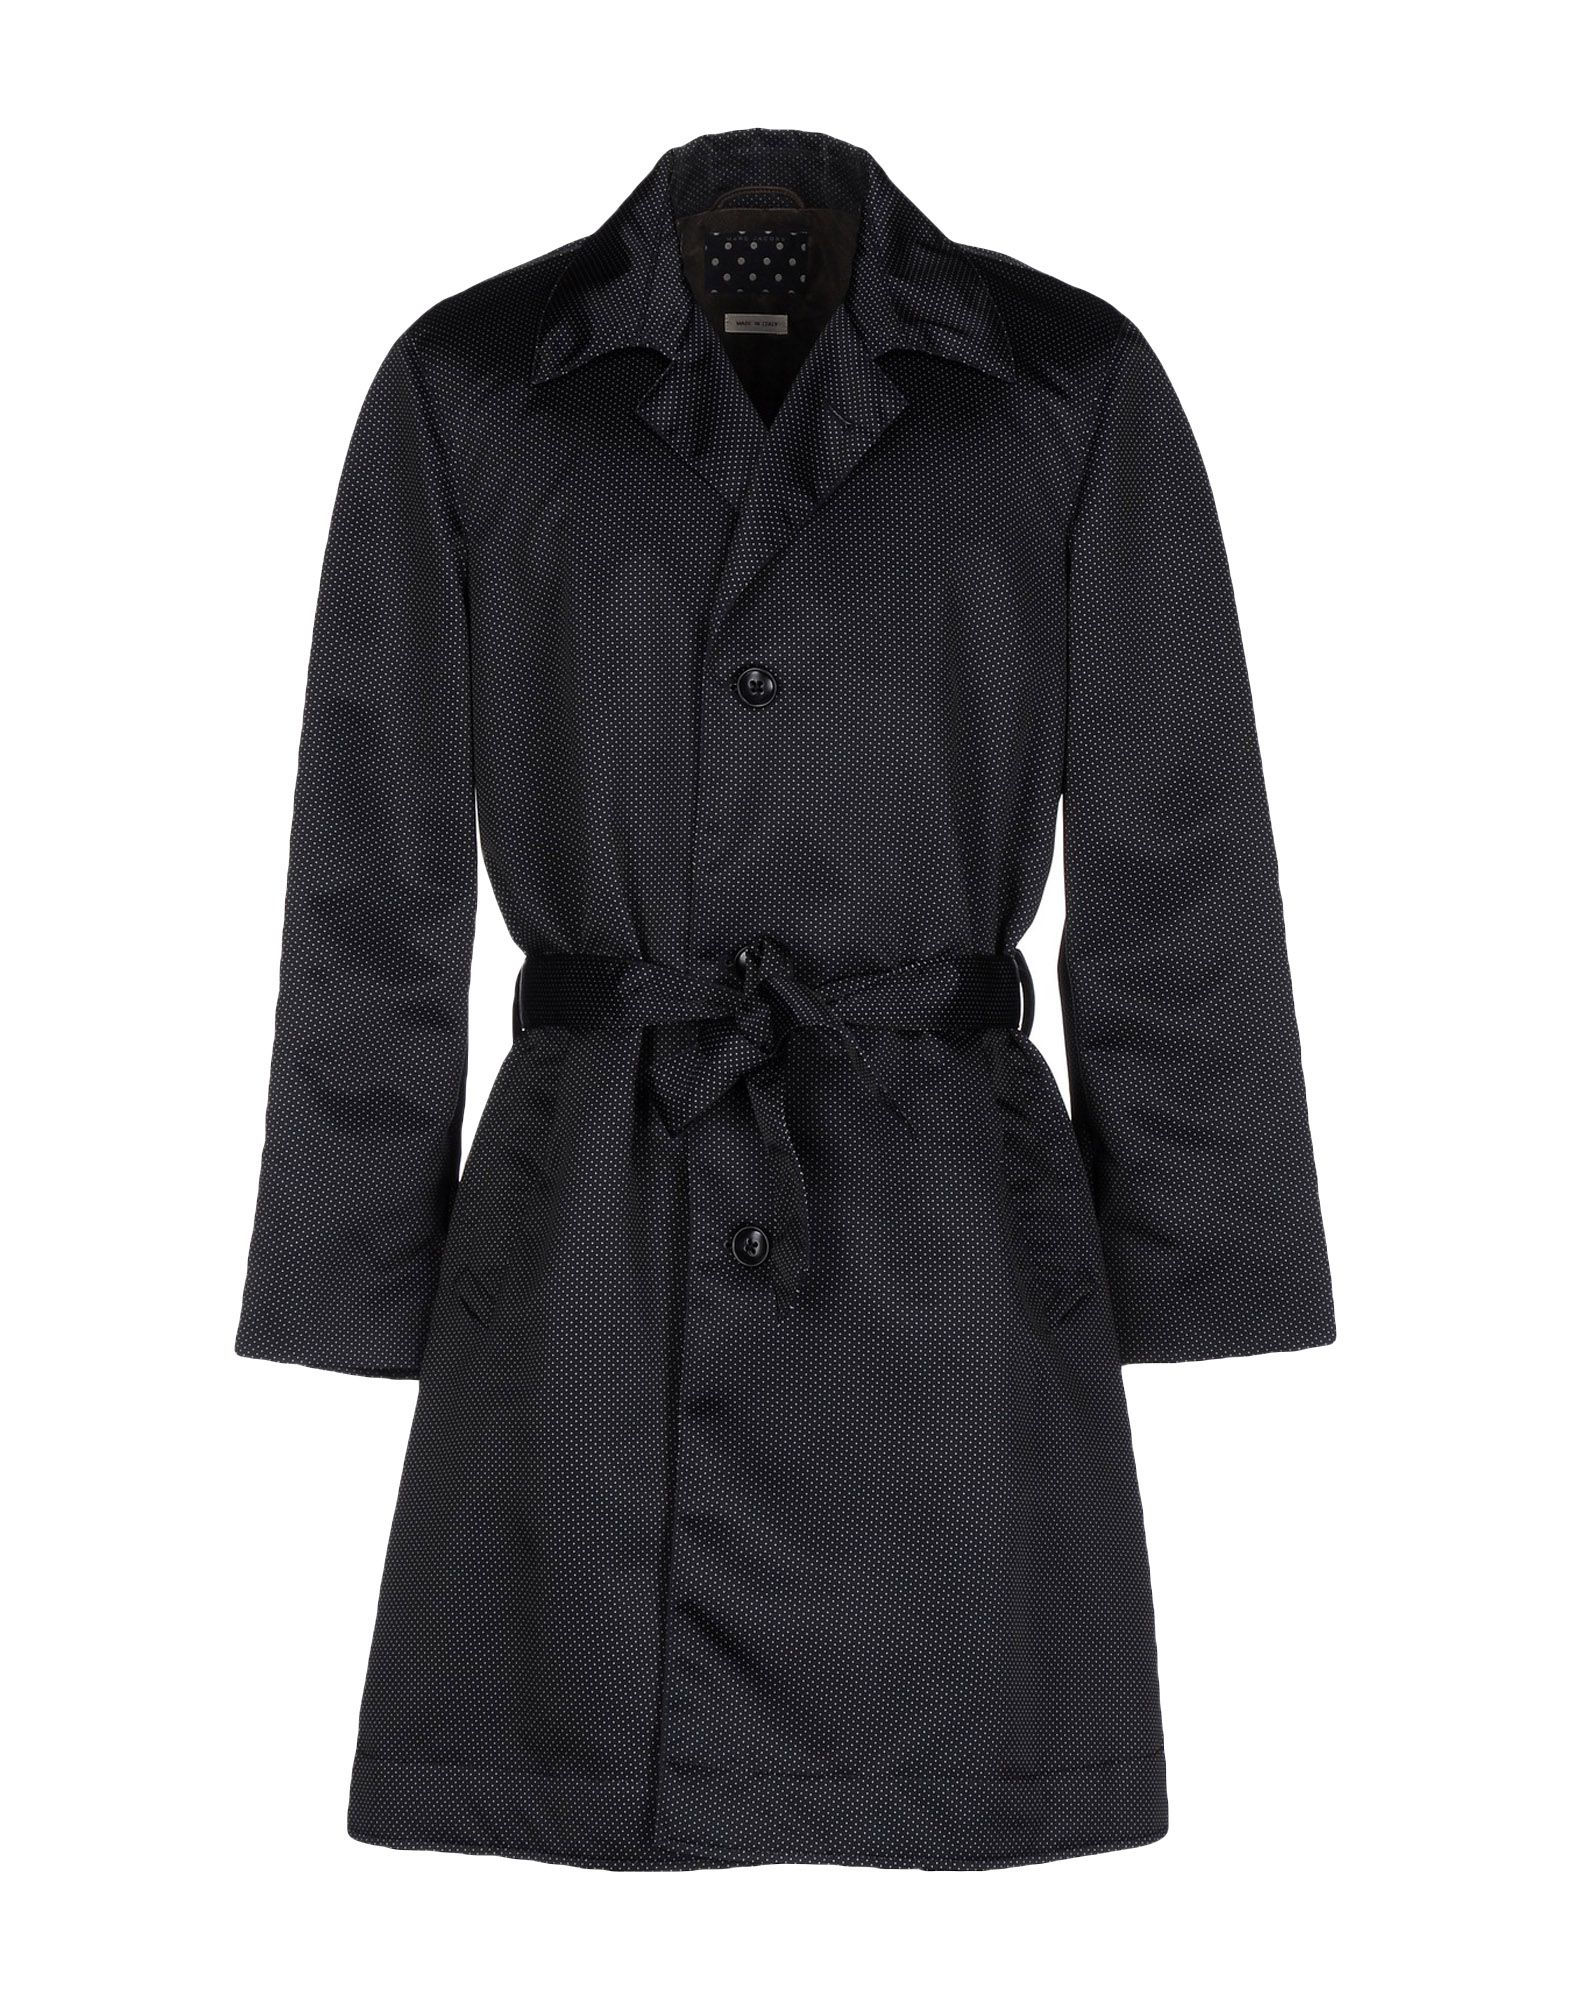 marc jacobs  marc jacobs fulllength jackets